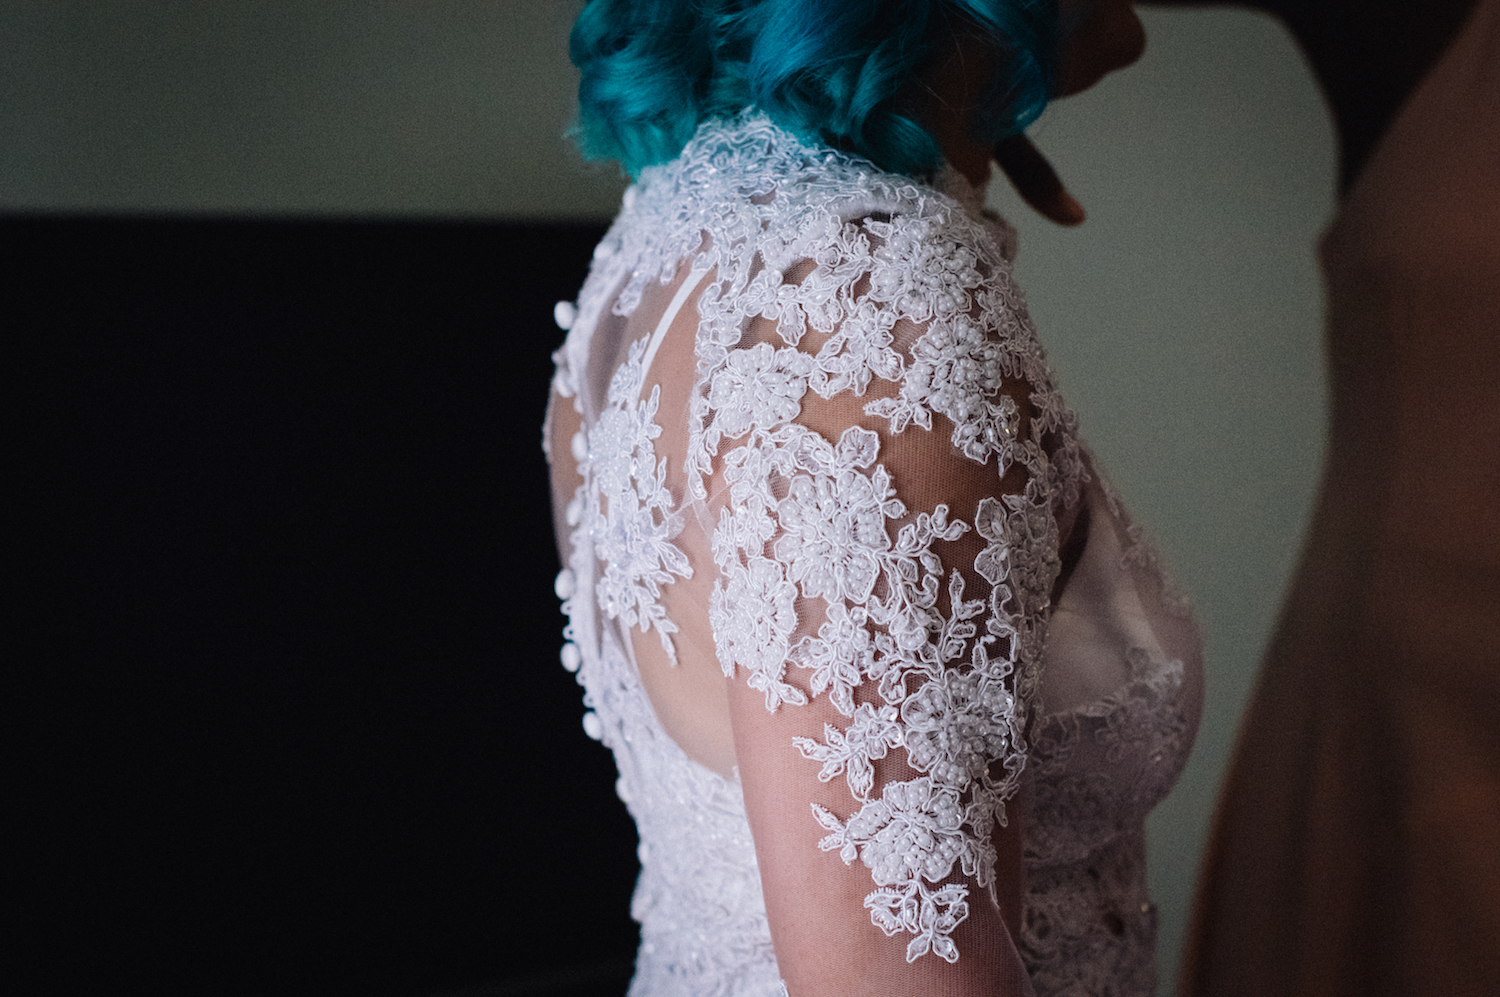 Perth Wedding Photography Aimee Rory Handmade Dress Details 2